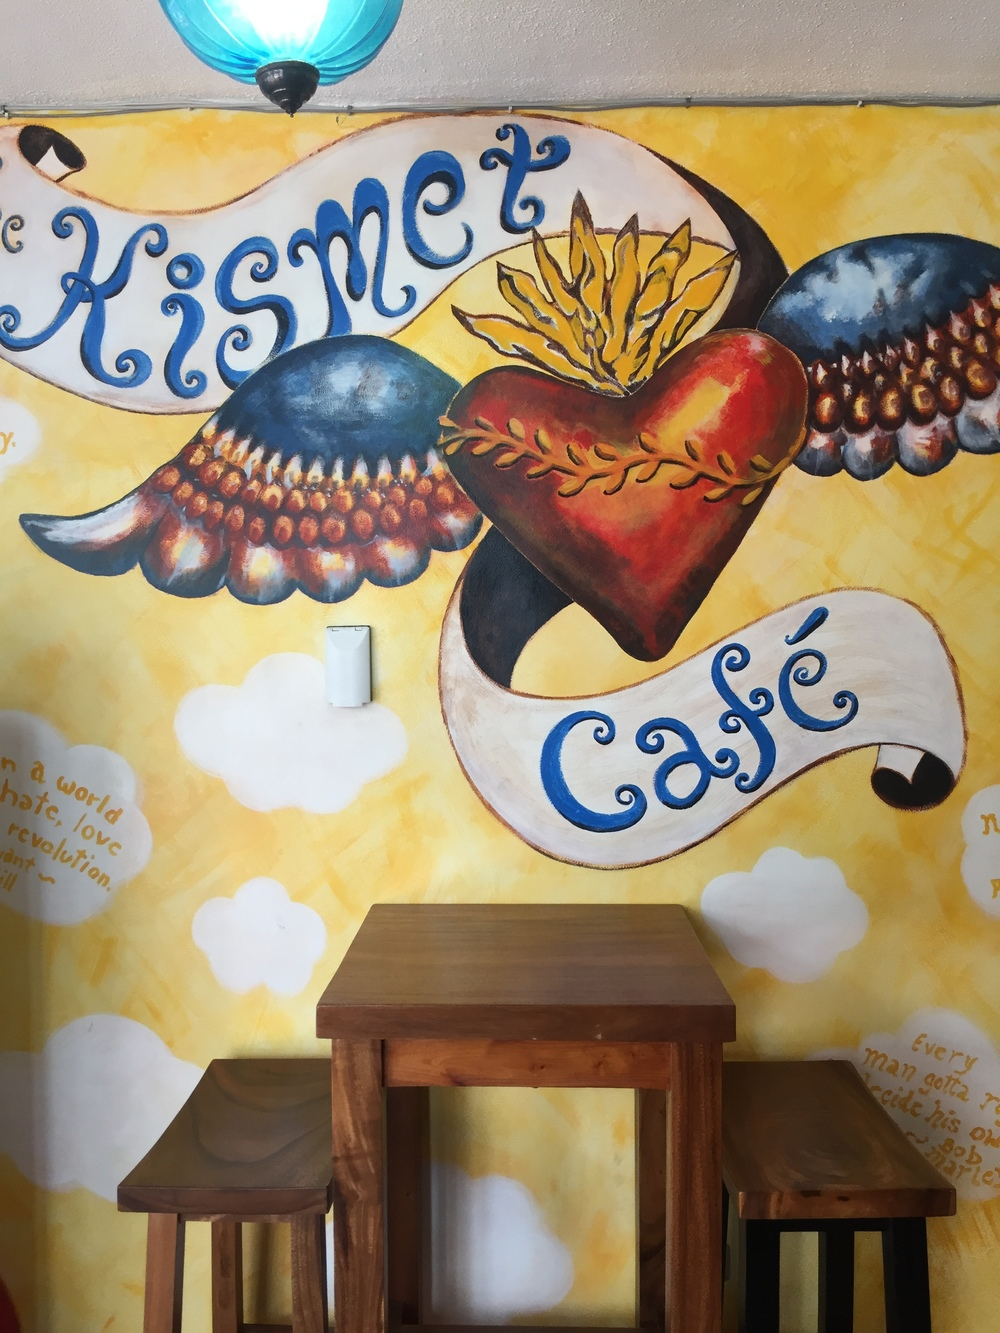 Beautifully, illustrated Kismet Cafe